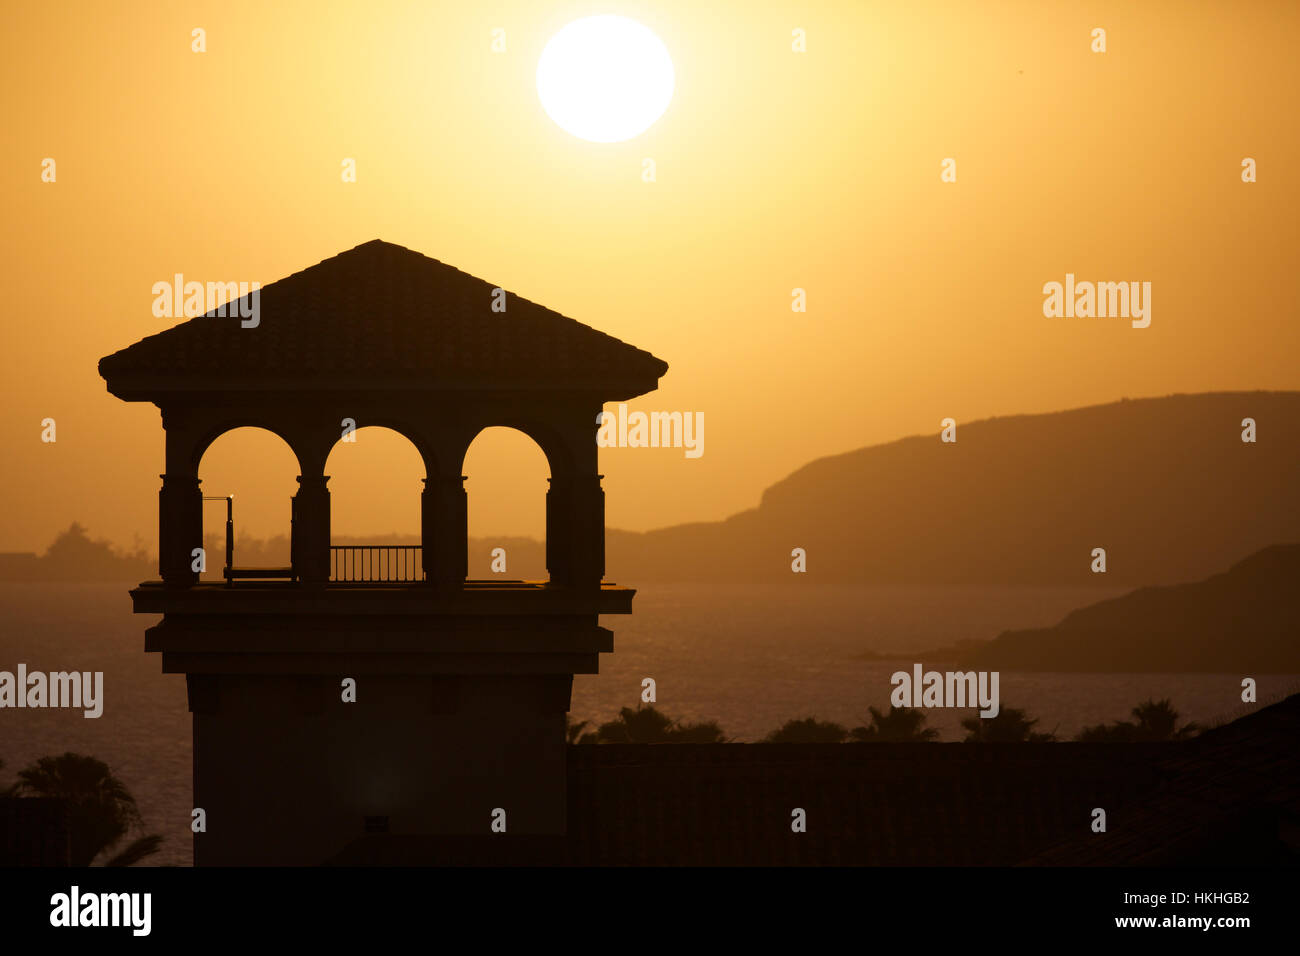 silhouette of built structure during sunset. river, twilight, idyllic, nature. - Stock Image